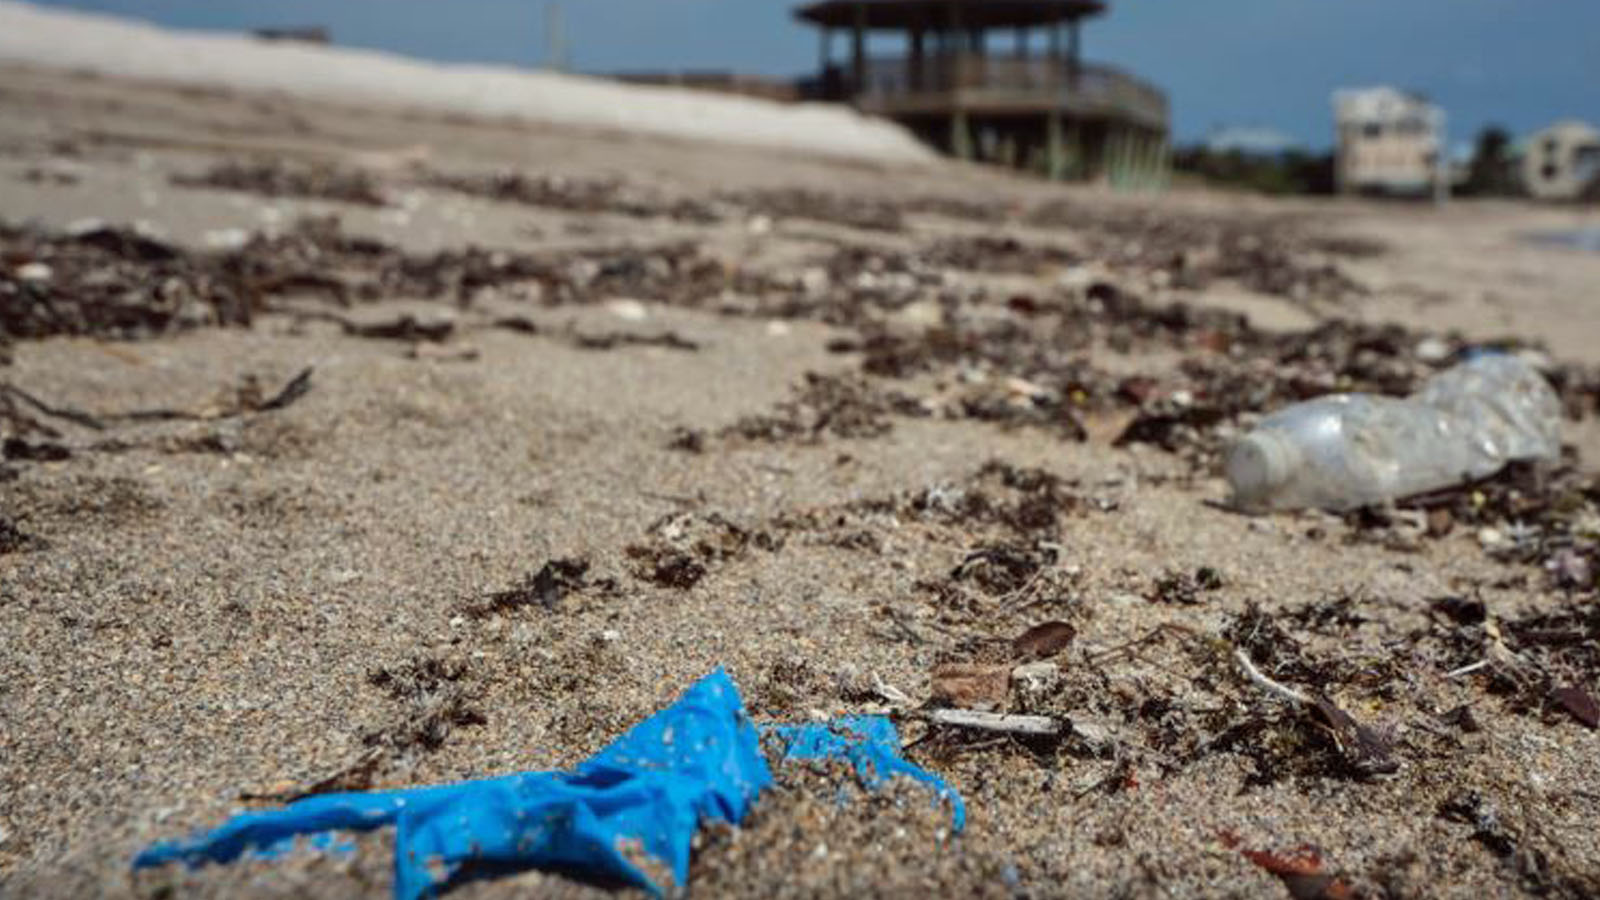 Keep America Beautiful: As States Reopen, Proper Disposal of Litter and Trash Remains Paramount